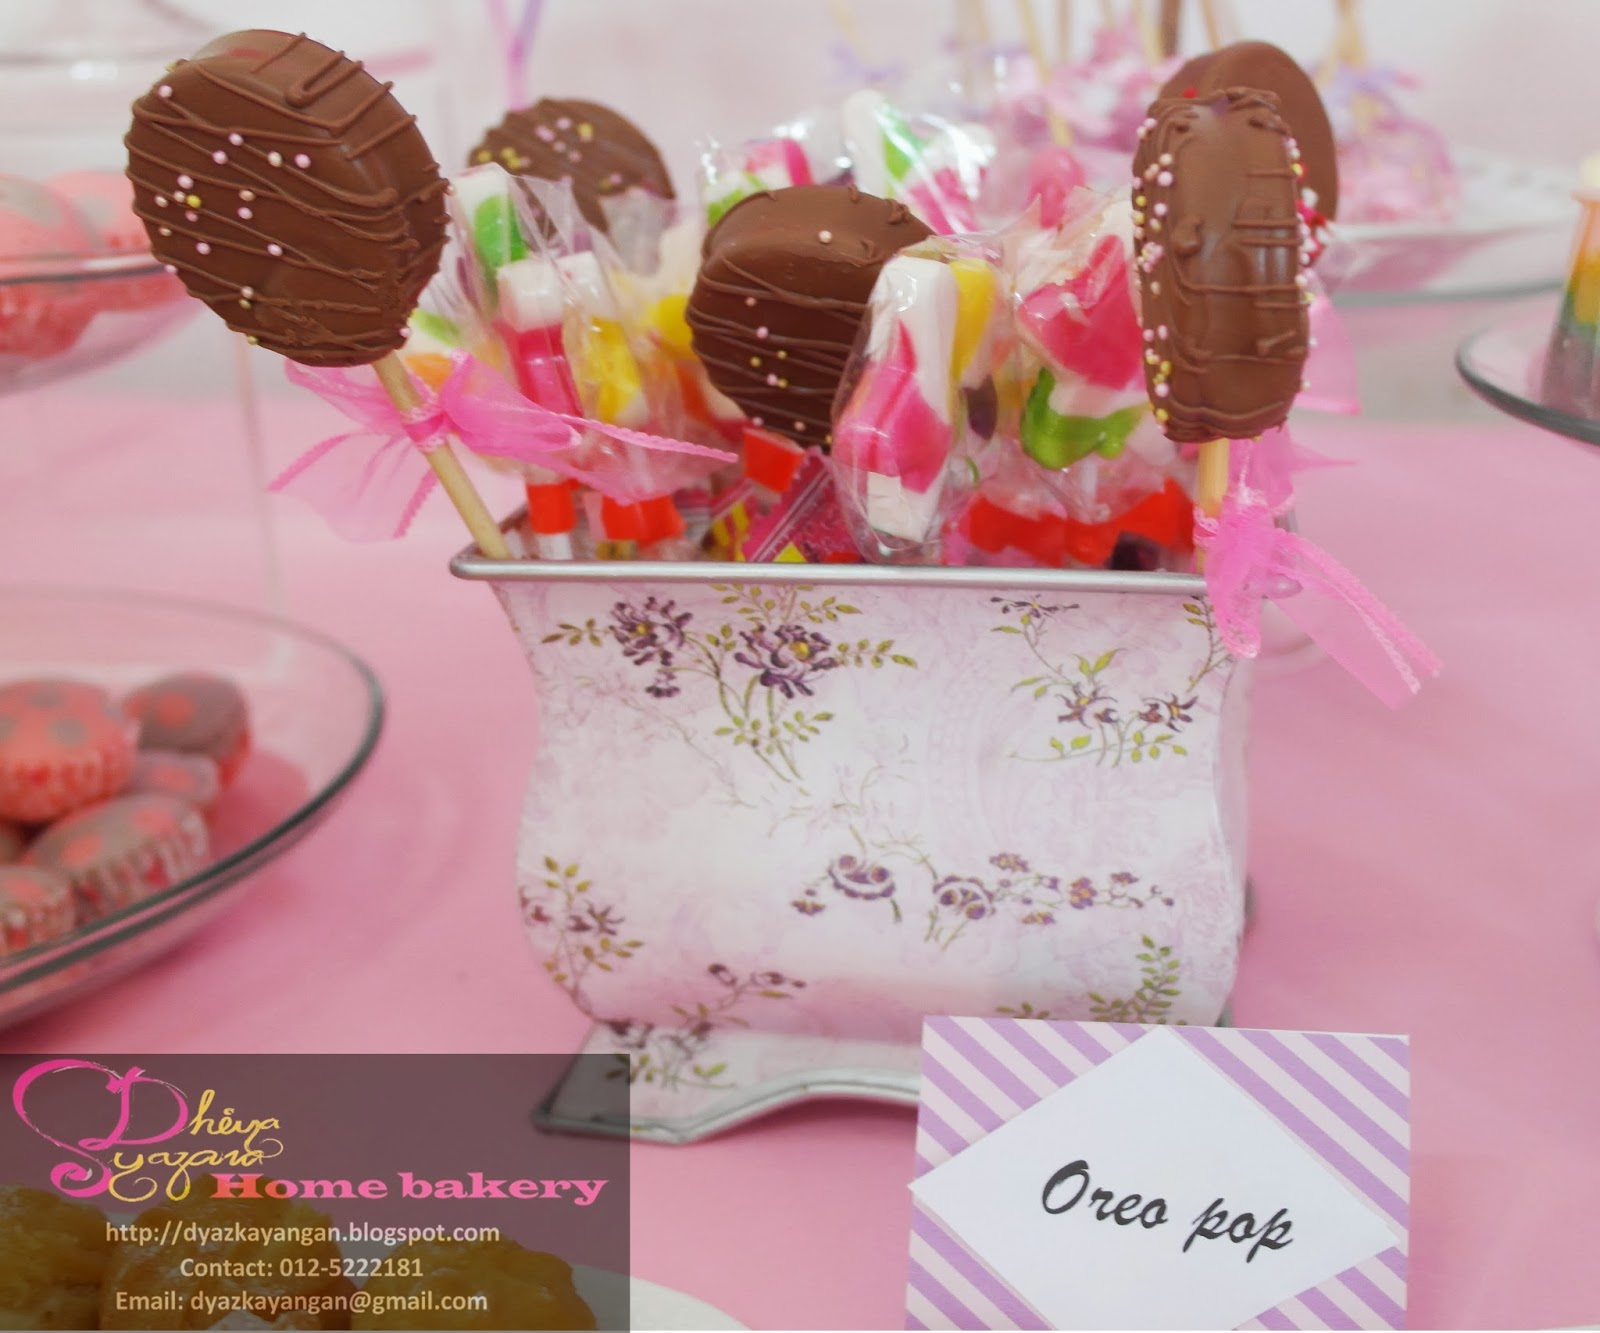 Dyaz Kayangan Home Bakery: Chocolate covered oreo lollipops - for ...